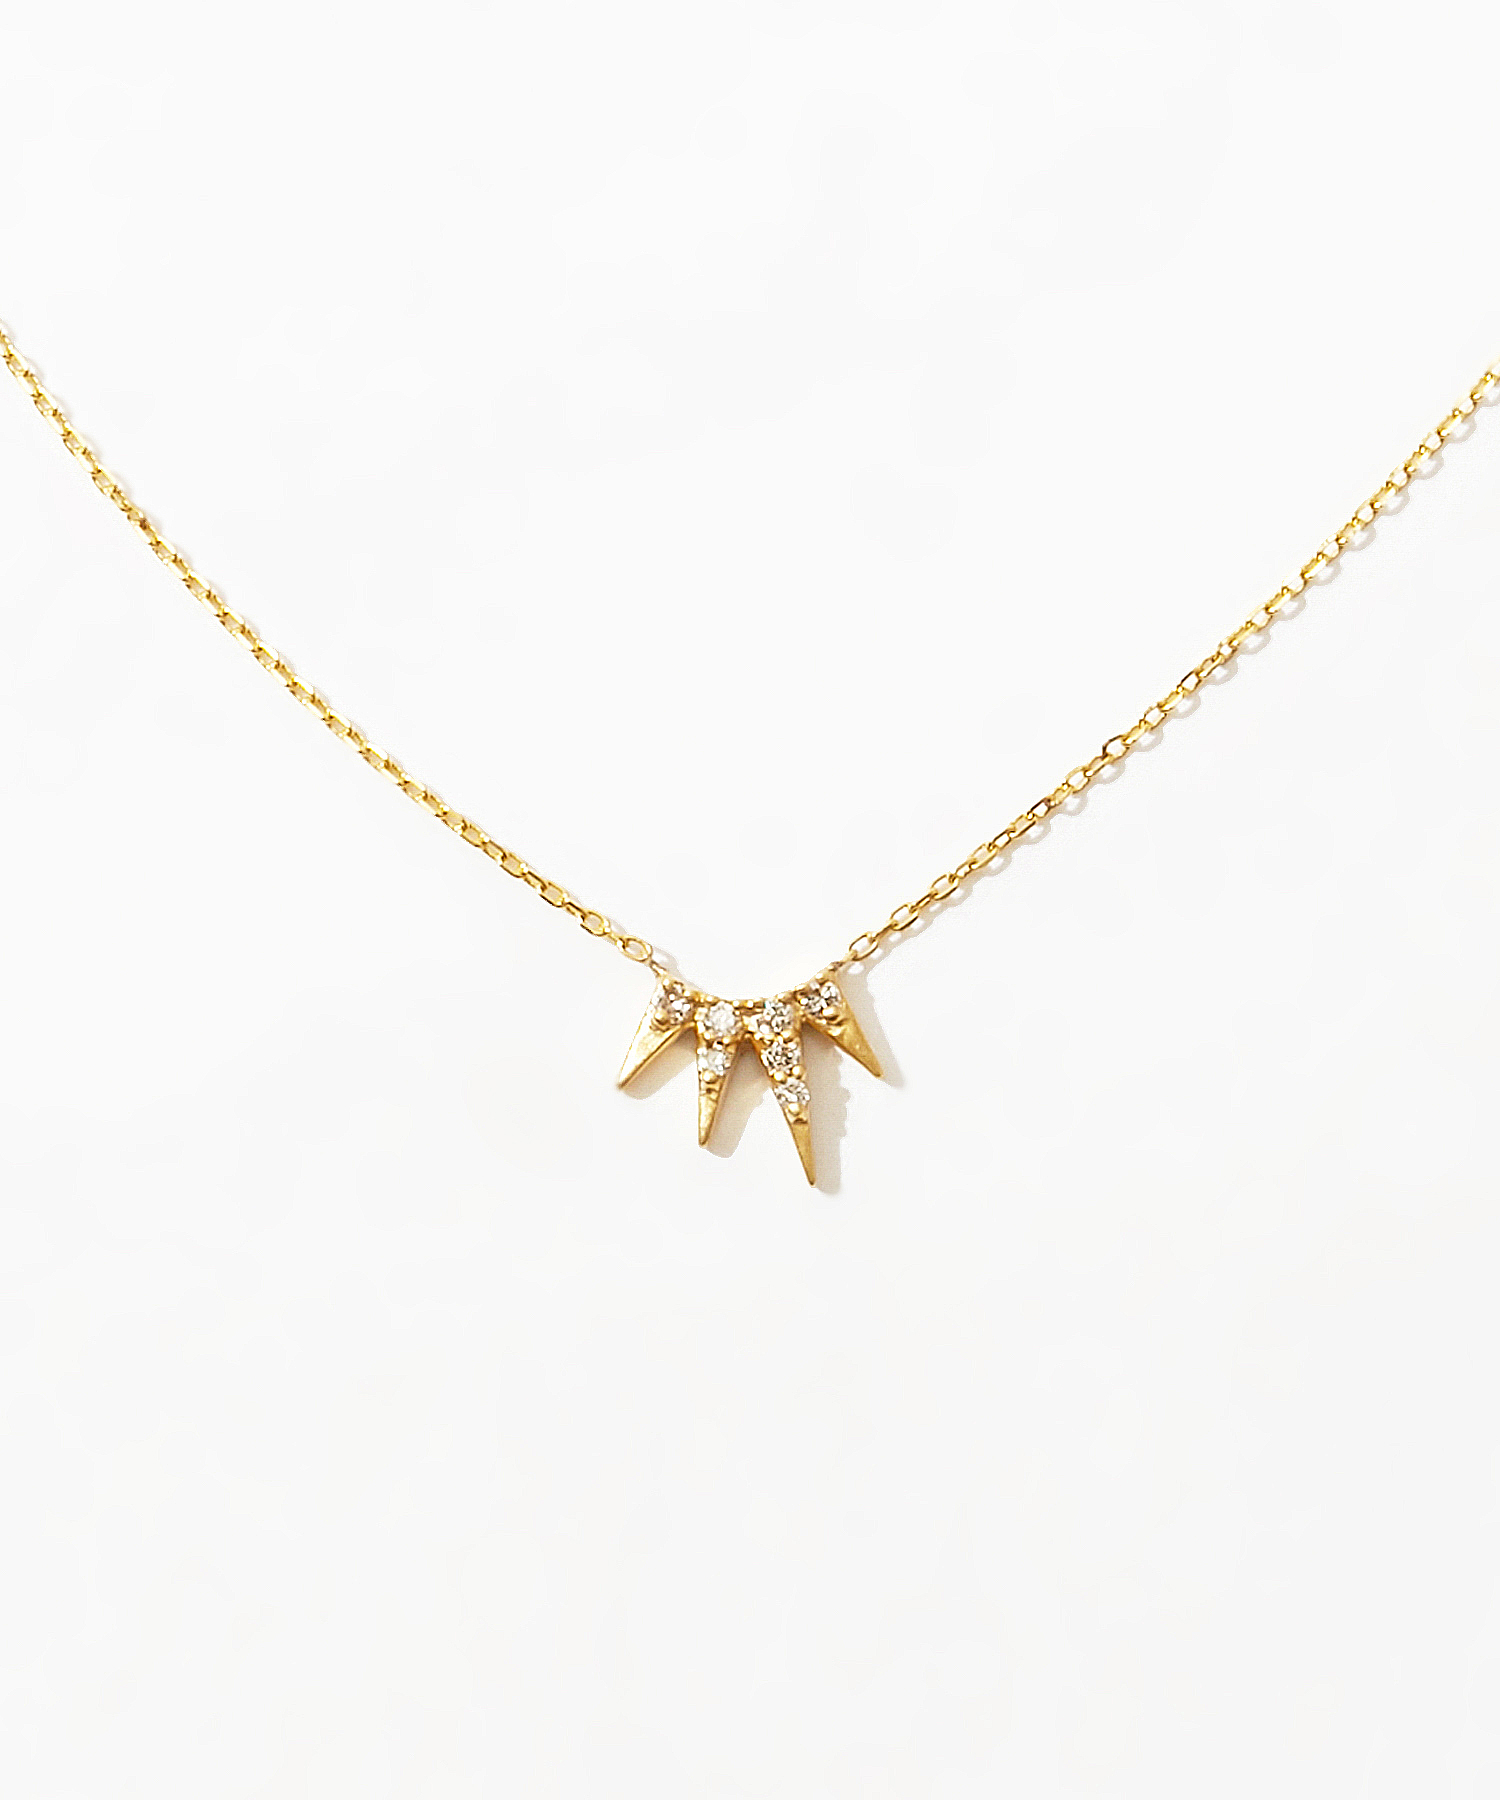 [dawn] K10 mere diamonds necklace